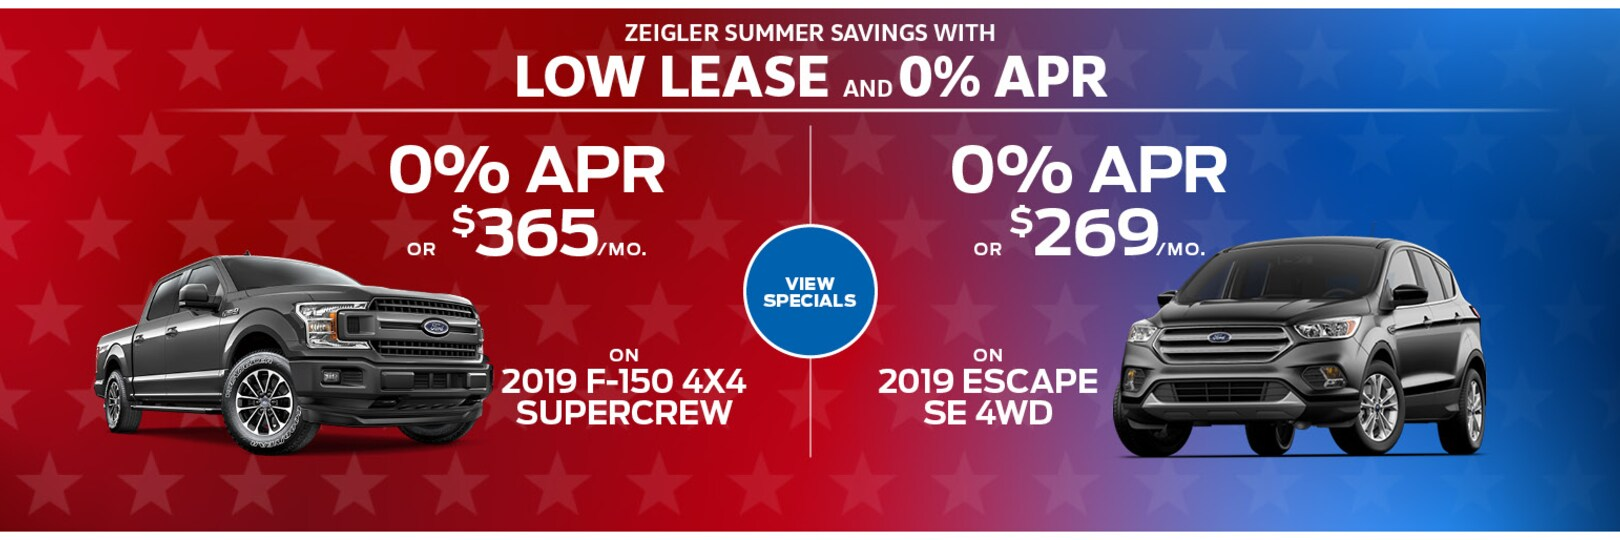 Jordan Ford Mishawaka >> Zeigler Ford Of Elkhart New And Used Ford Dealership In Elkhart In